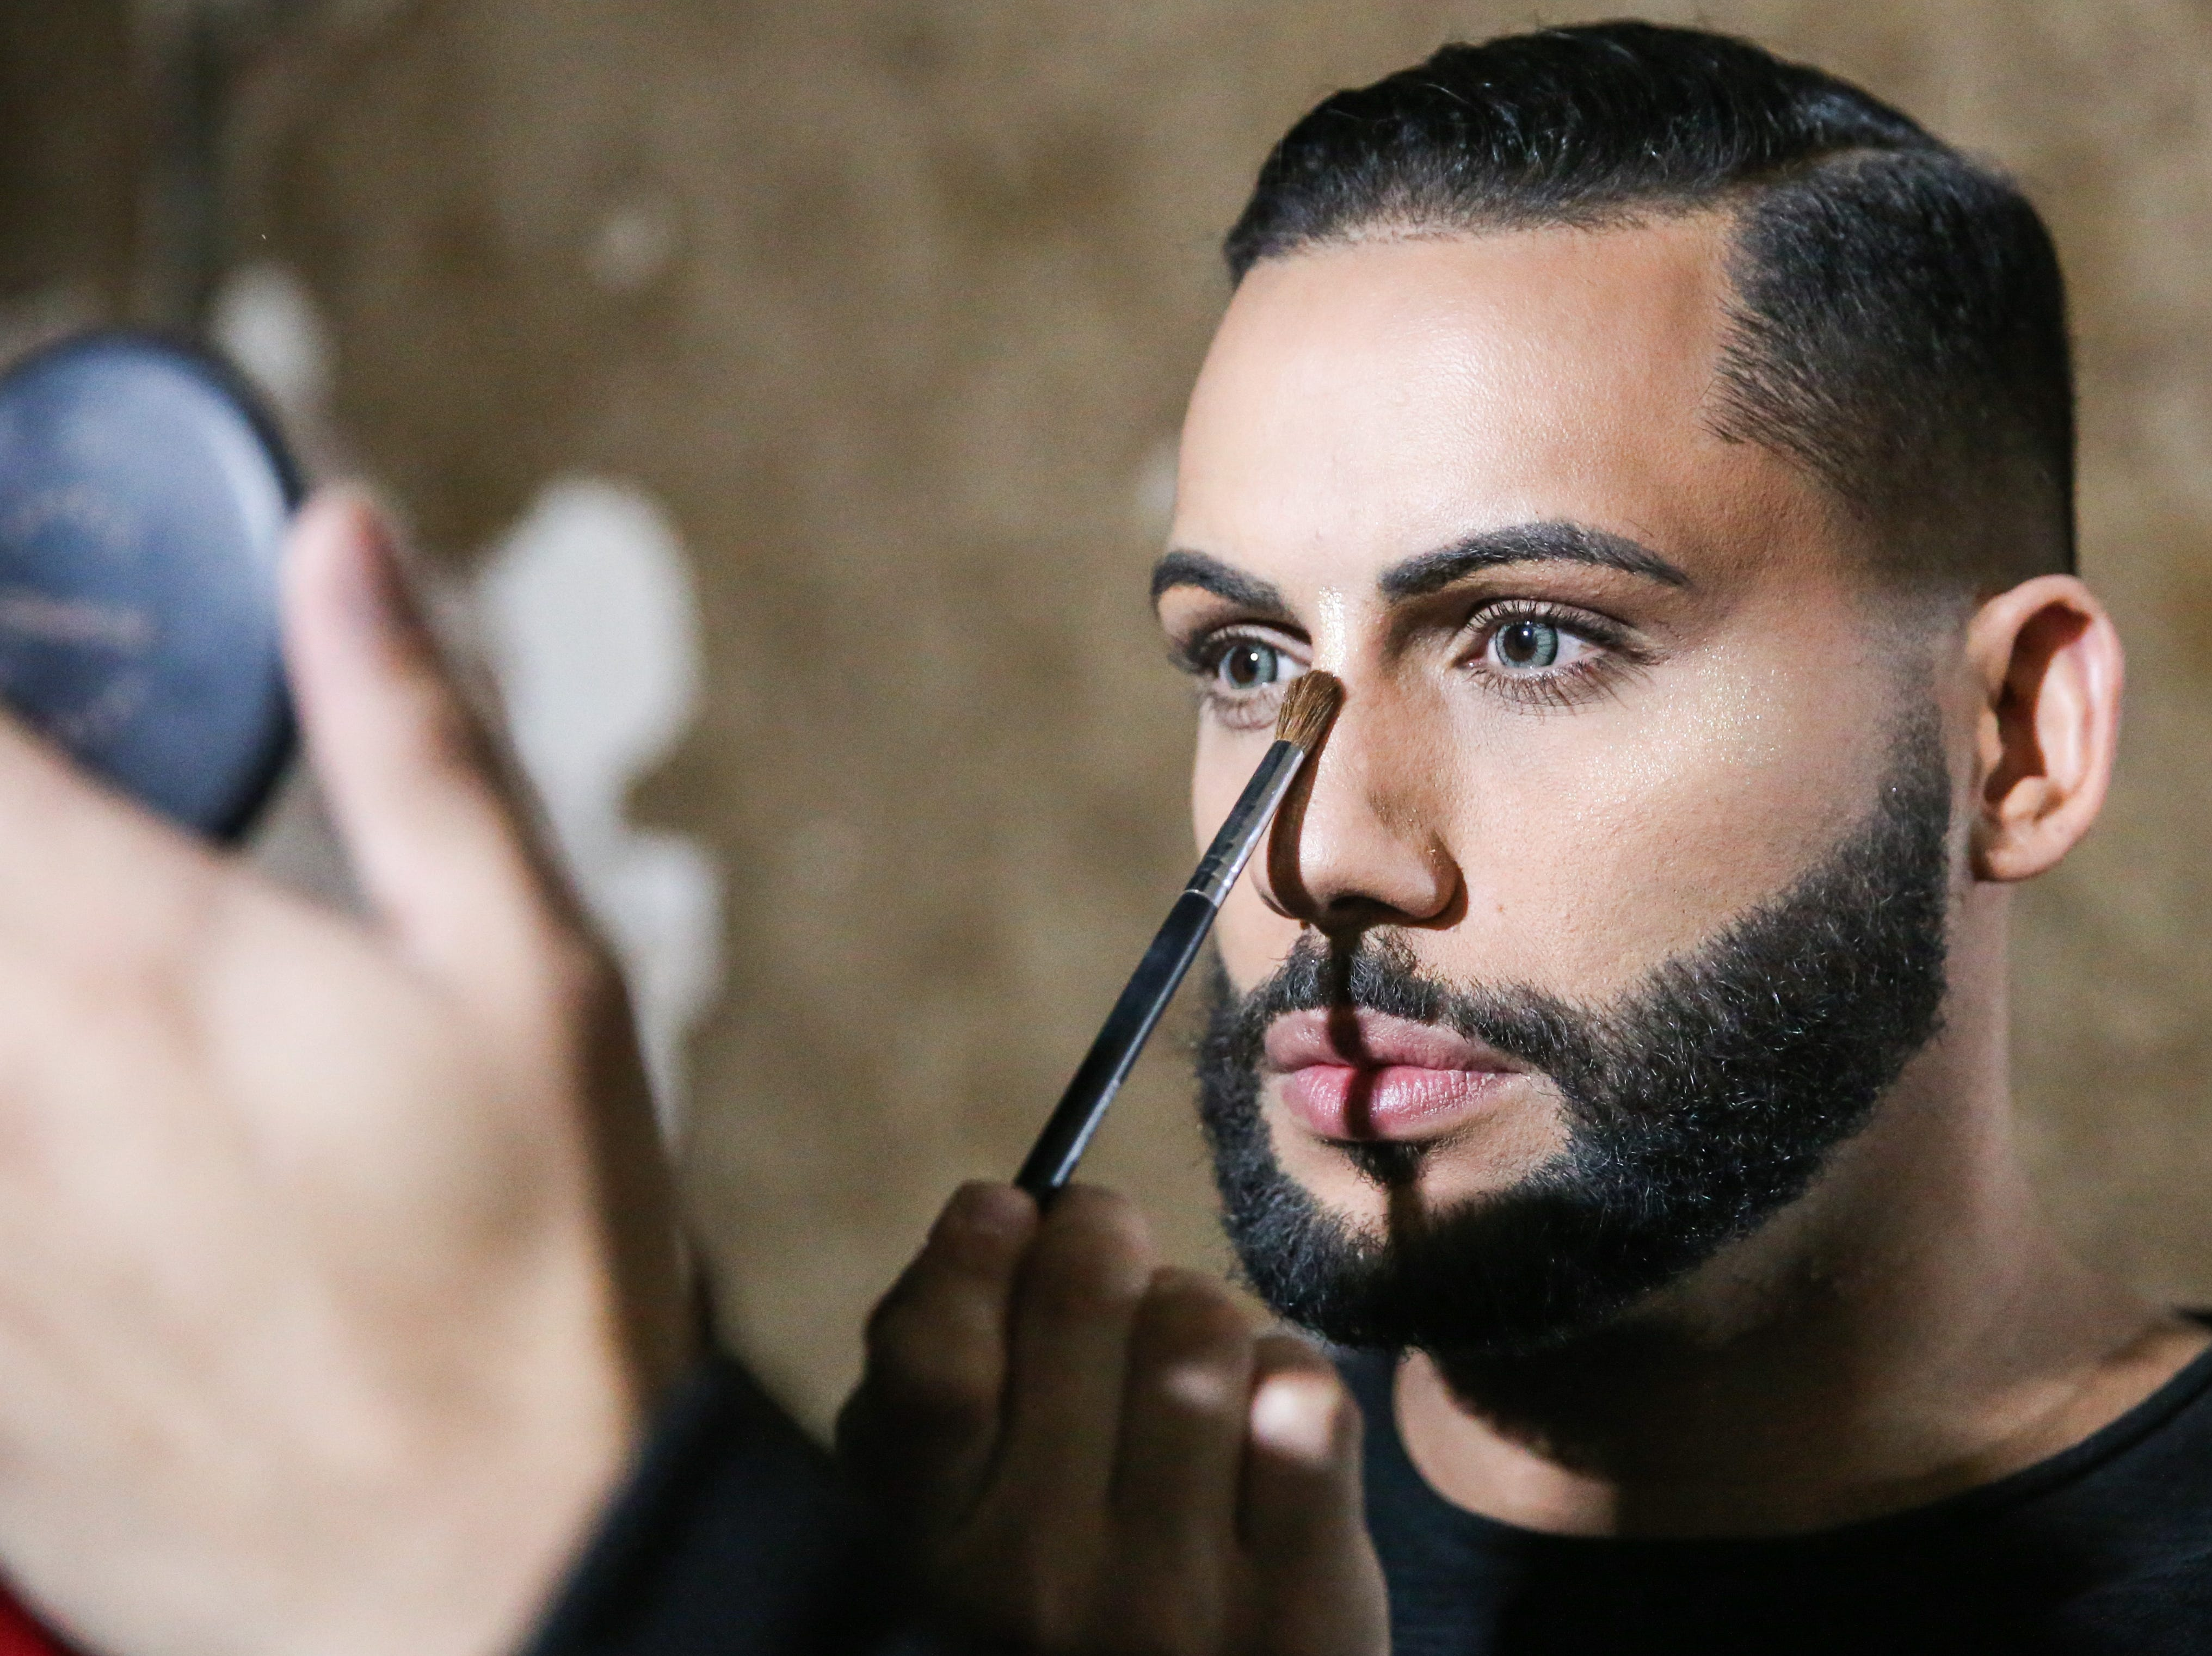 Aries Fatale applies makeup before the drag show Friday, April 19, 2019, at the Beauregard.